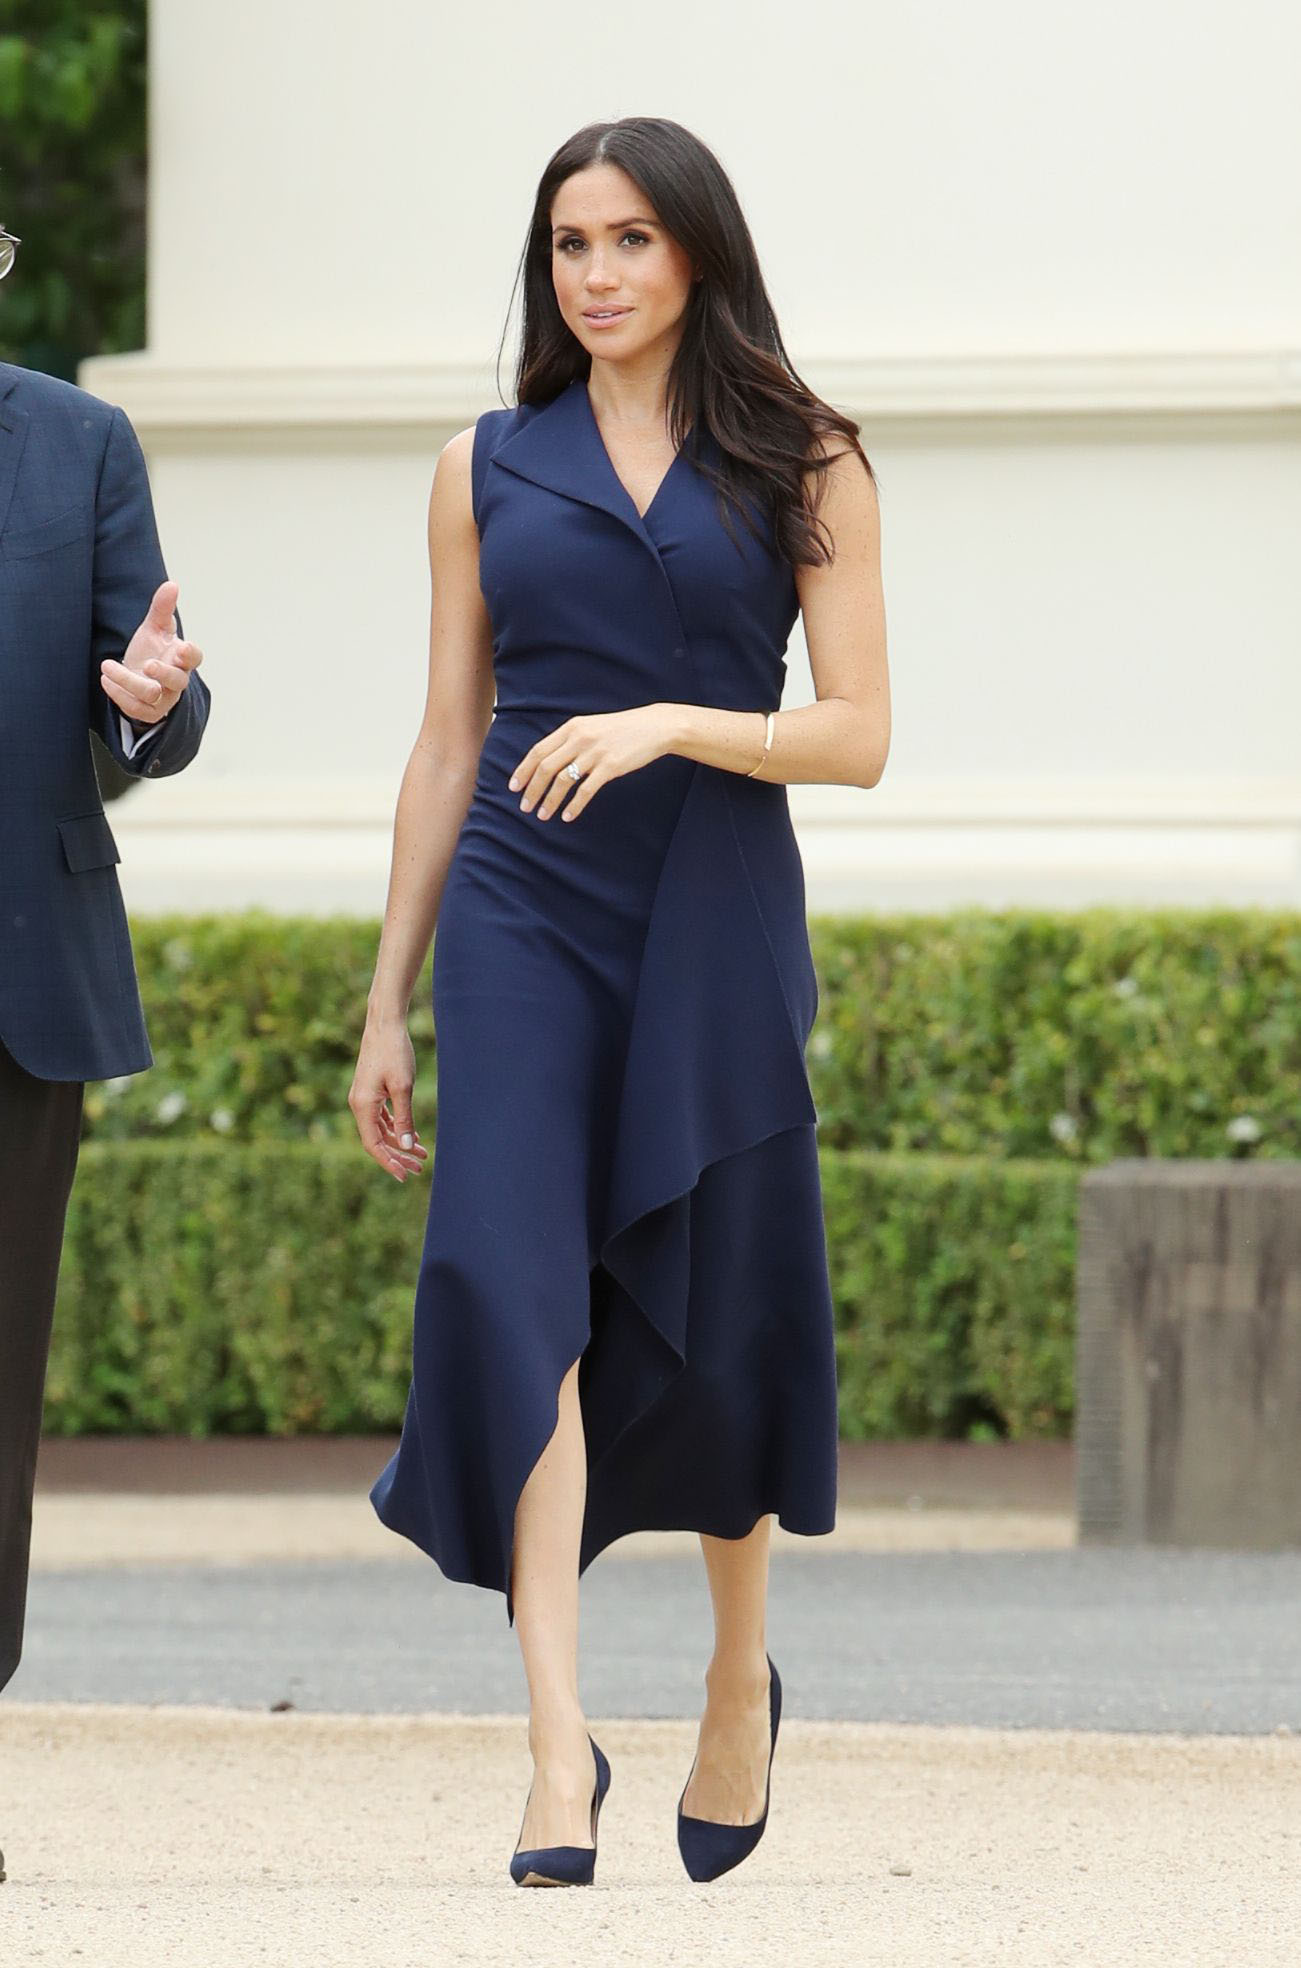 meghan markle brings back solid coloured outfits  masala